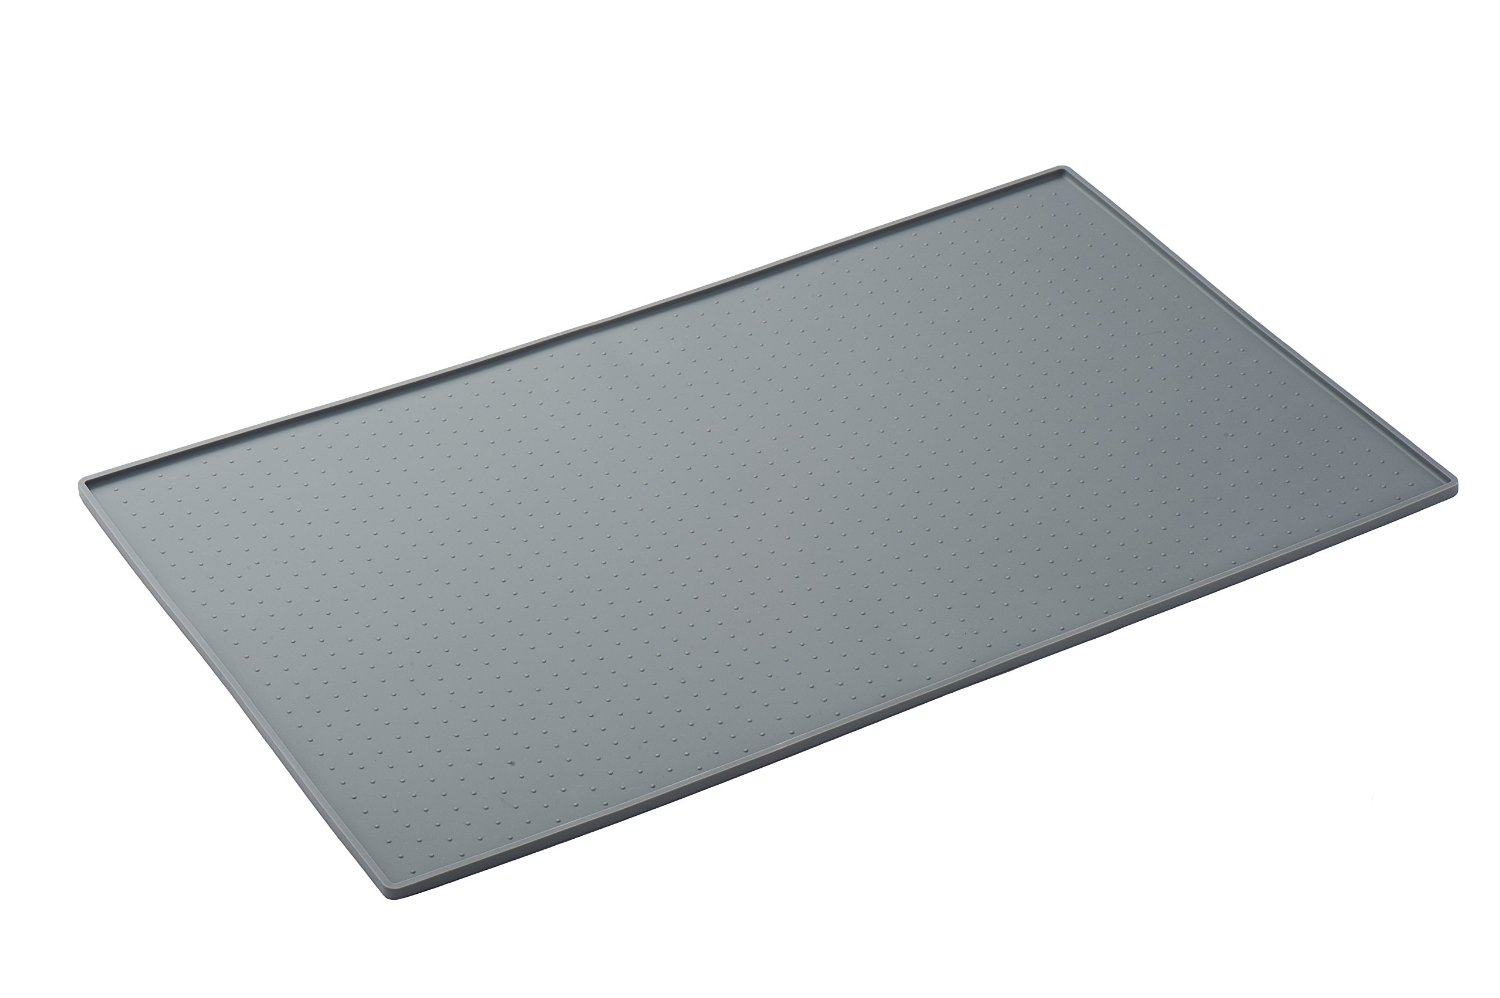 unp bowl dog pet mustafa mat products mats bali gray the